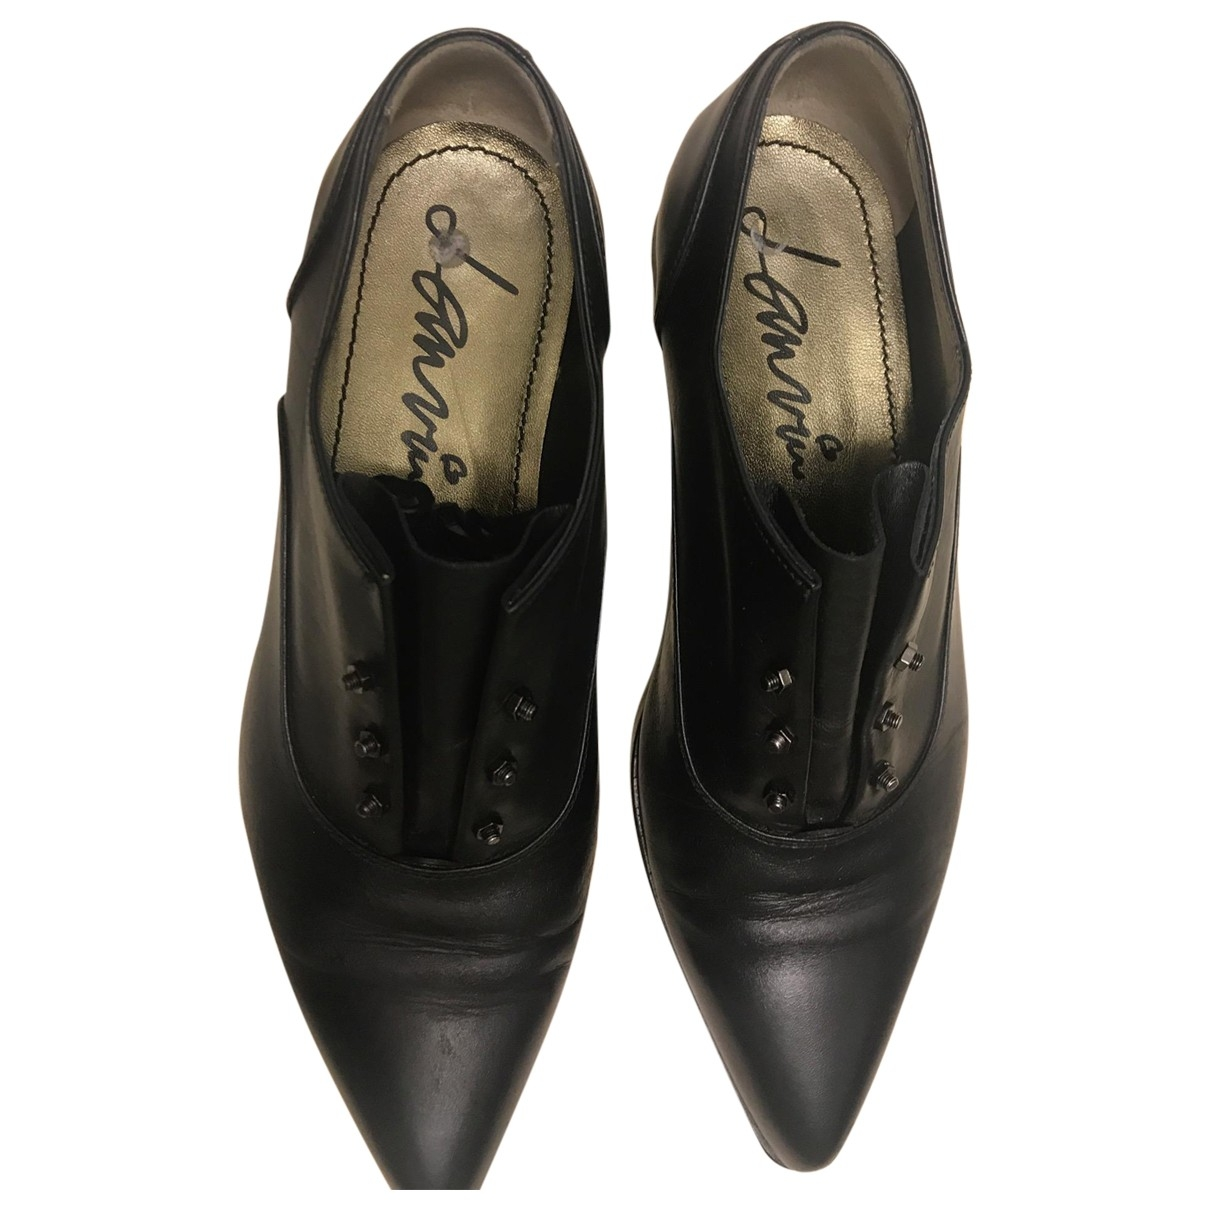 Lanvin \N Black Leather Flats for Women 37 EU